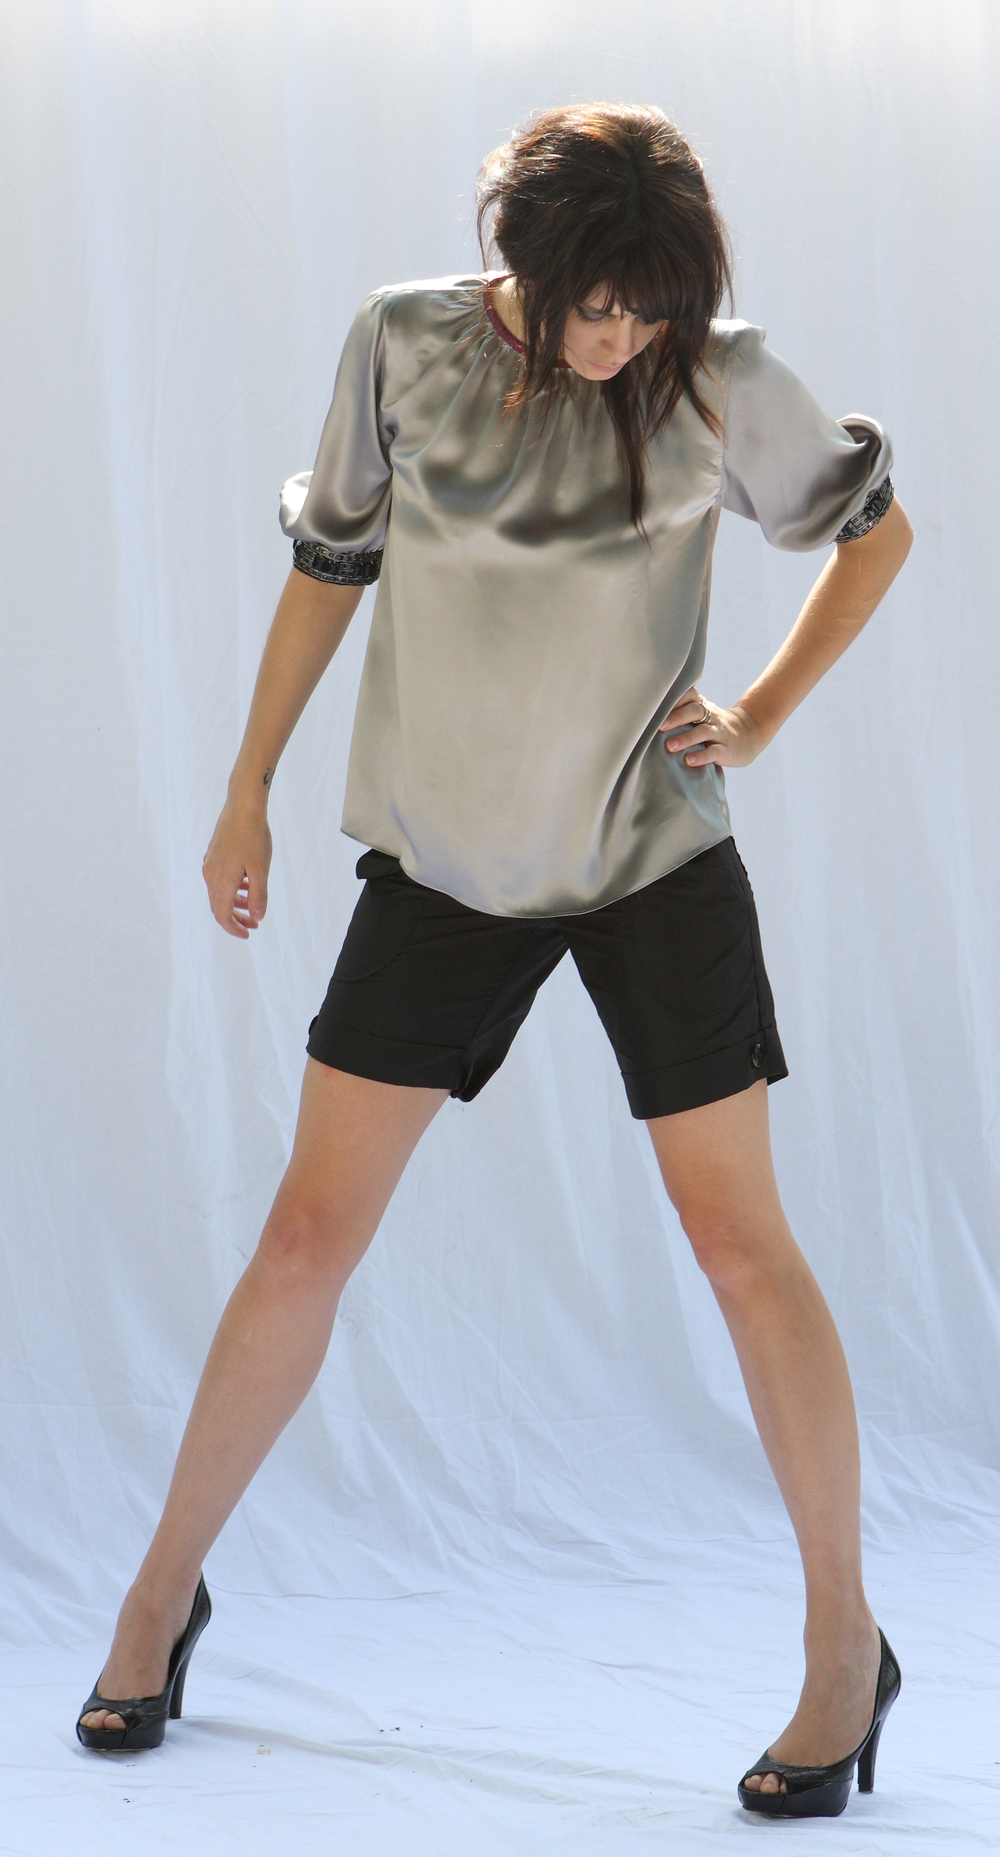 Sheath Blouse w/ Beaded Cuffs in Silver Silk Charmeuse  quilt Waist Cuffed Short In Silk Taffetta